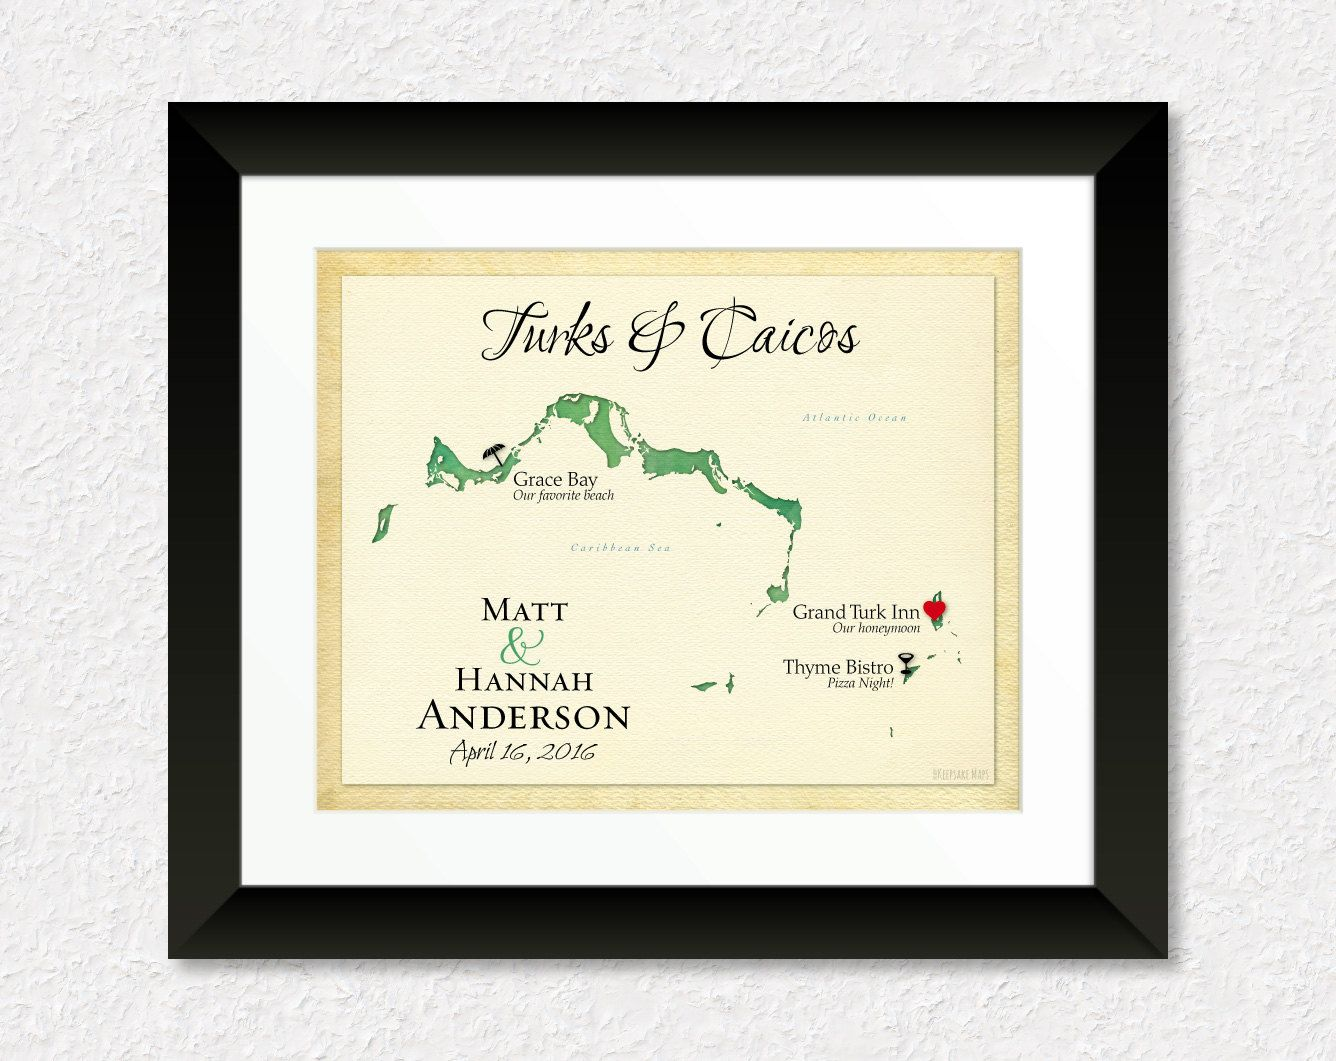 Wedding Gift For Destination Wedding: Map Of Turks And Caicos, Unique Anniversary Gift